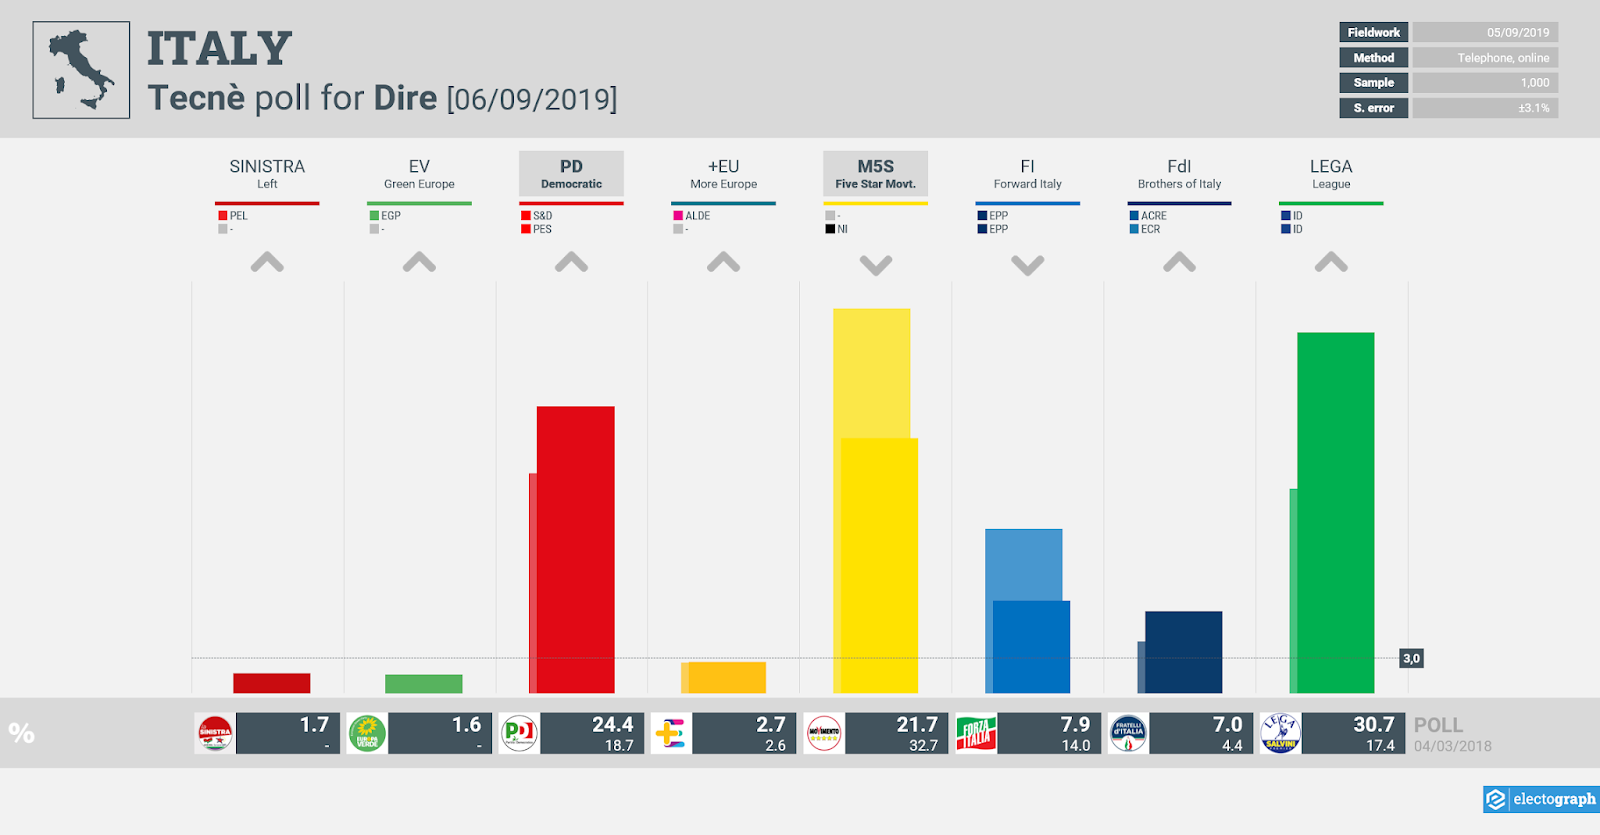 ITALY: Tecnè poll chart for Dire, 6 September 2019